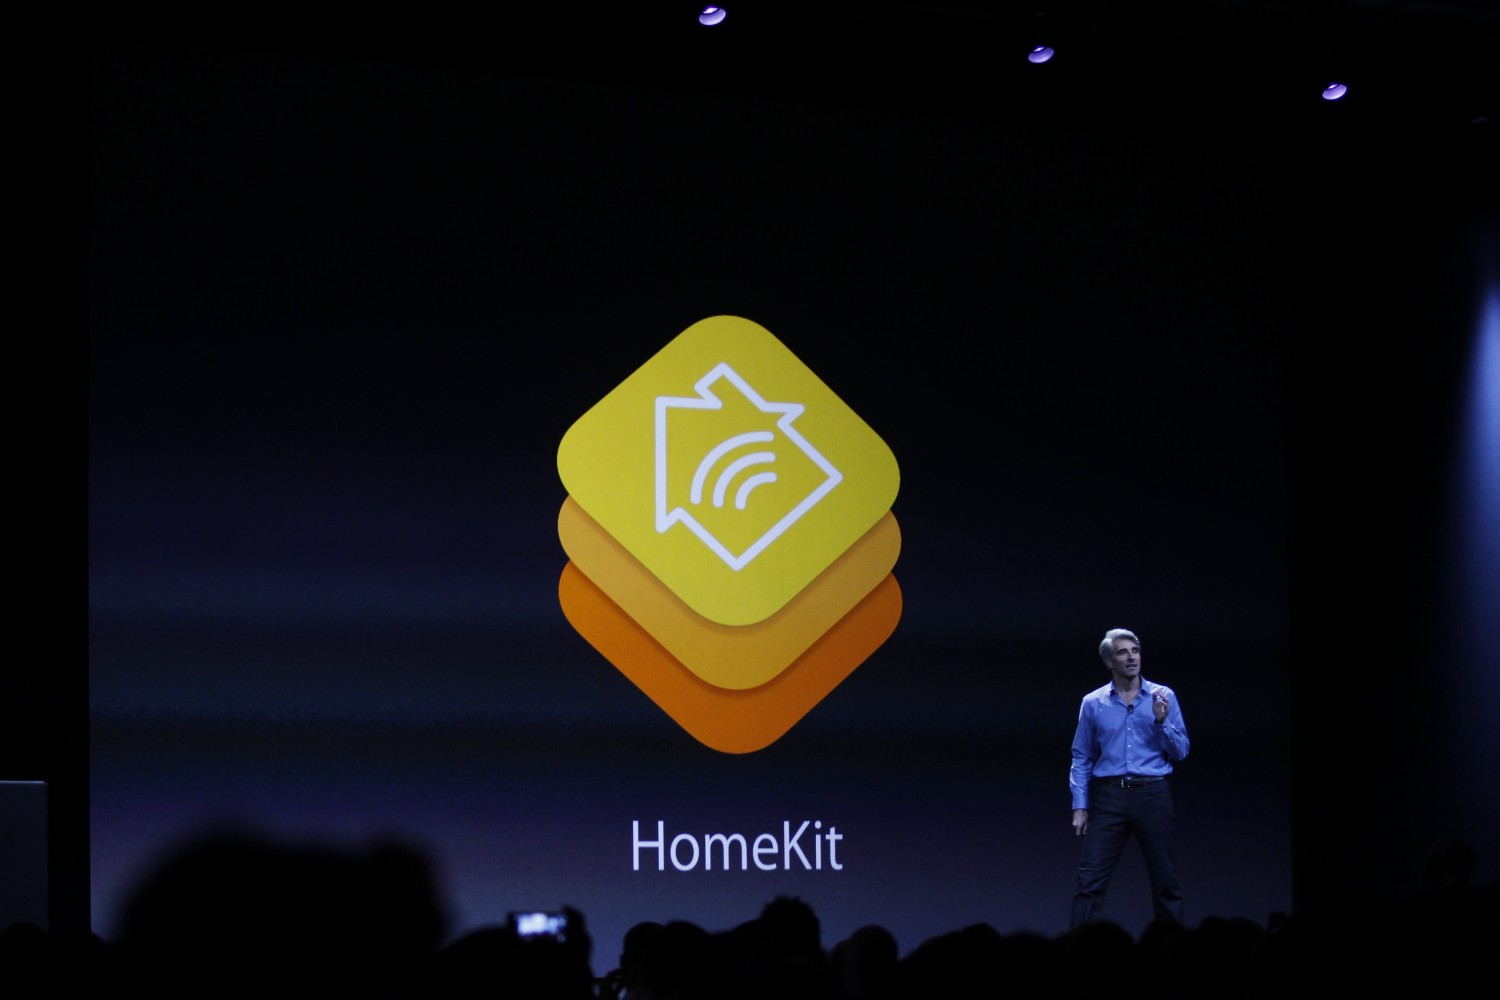 The longer Apple's HomeKit takes to arrive, the longer the 'connected home' suffers